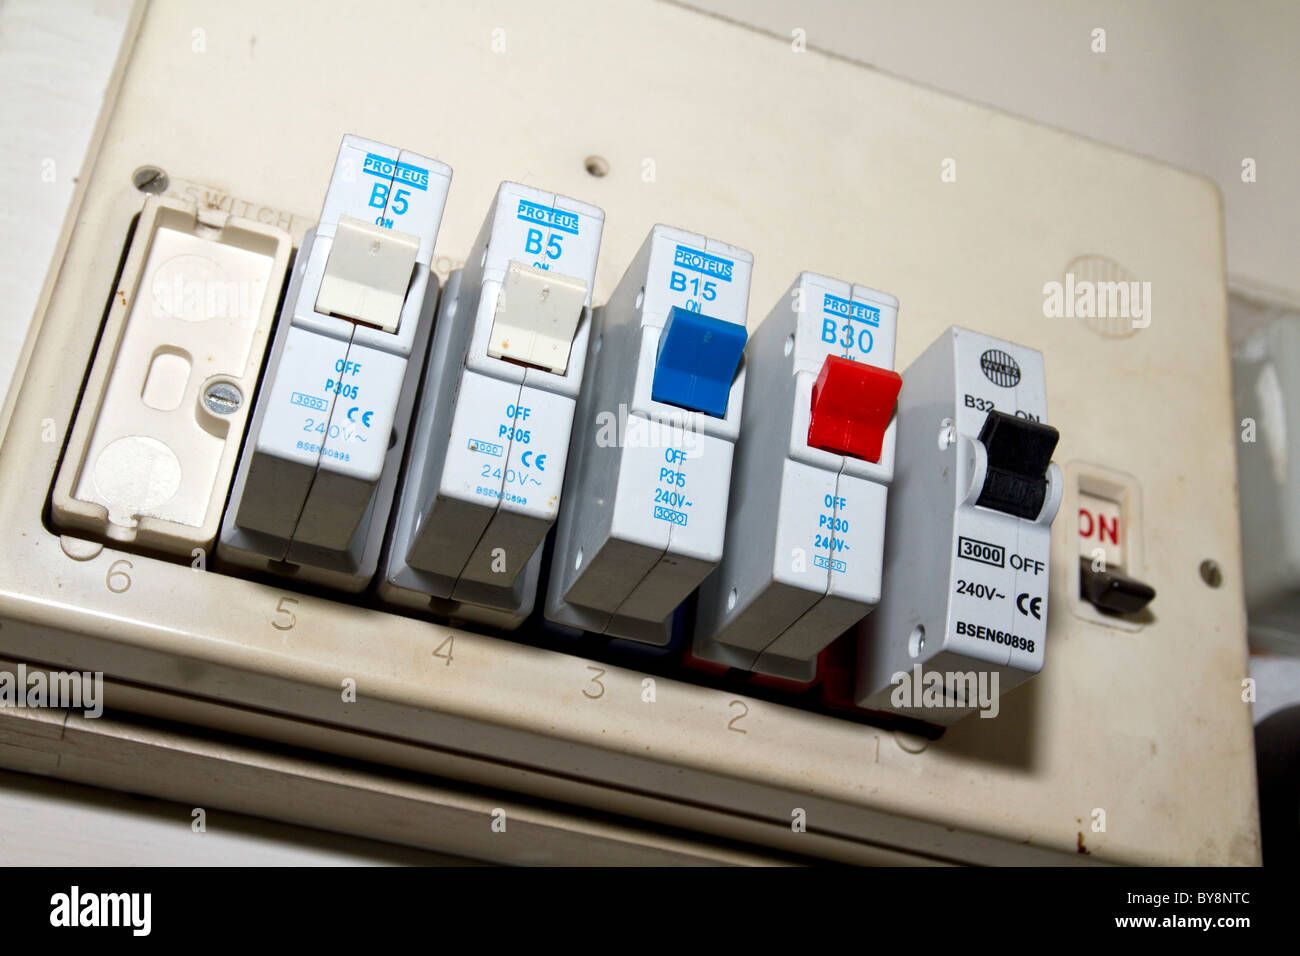 uk old electric fuse box in a london house BY8NTC old electric fuse box stock photos & old electric fuse box stock  at bayanpartner.co